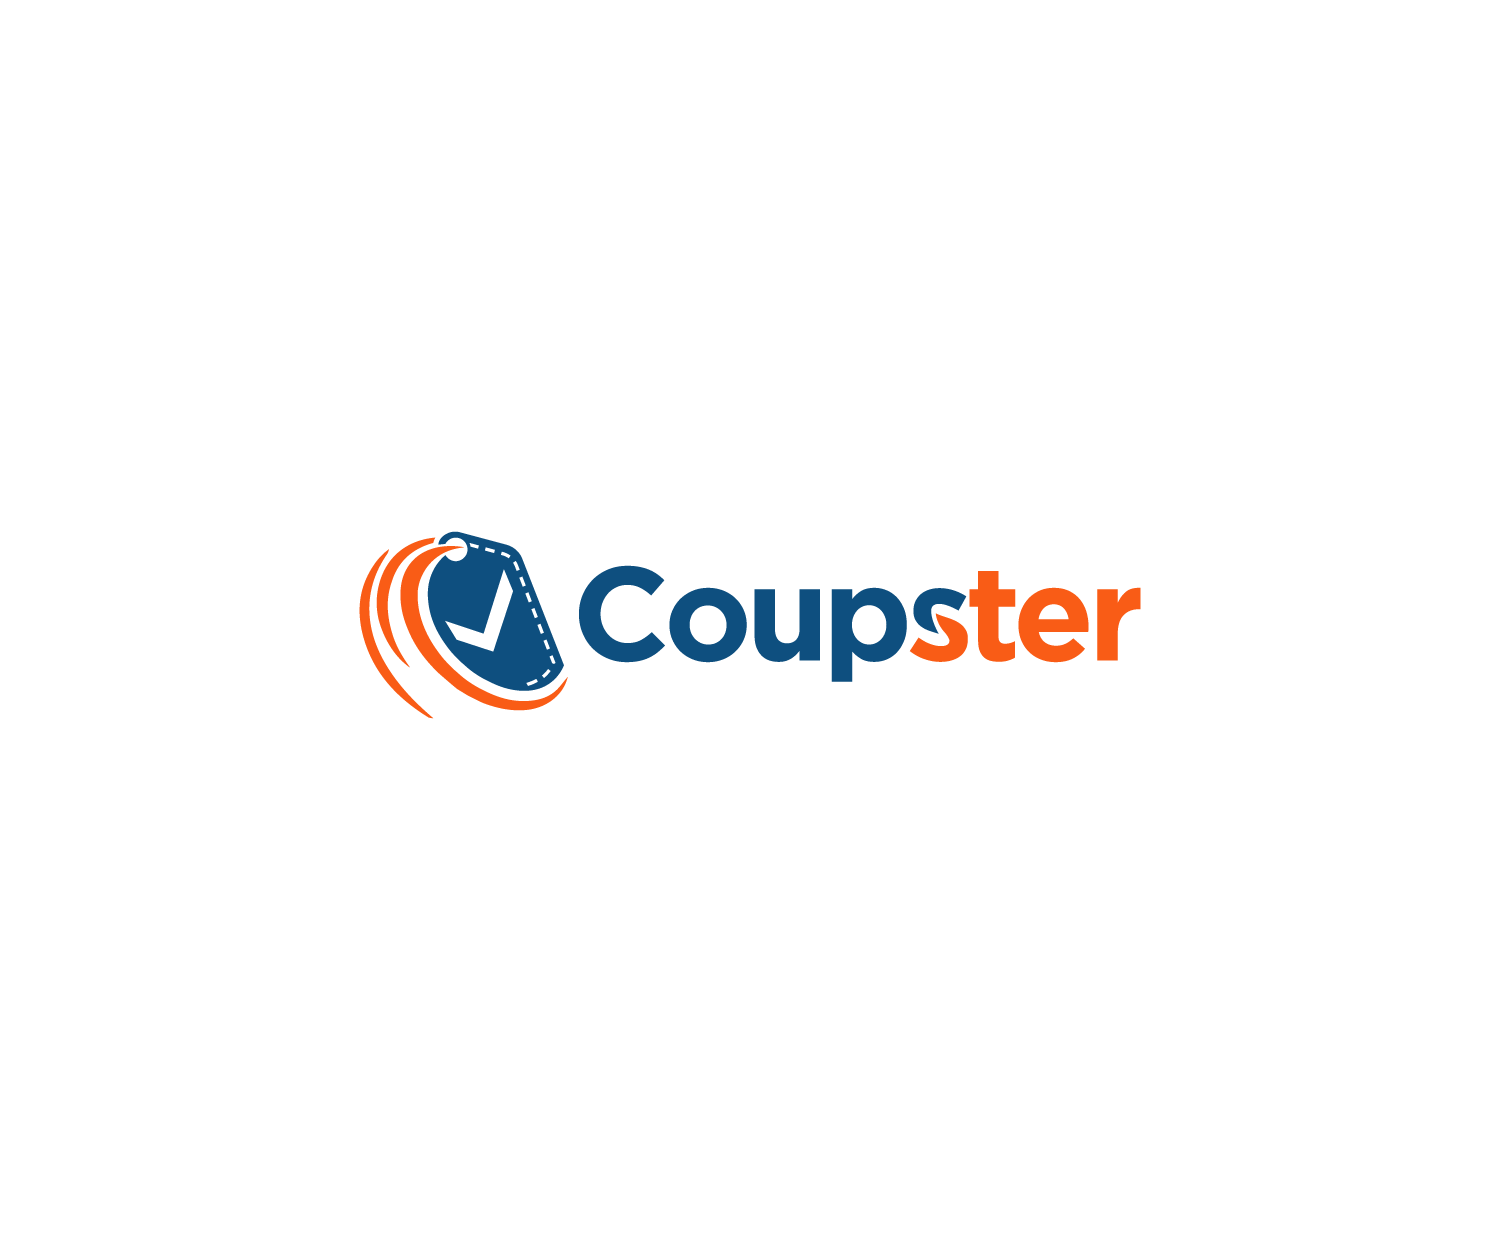 Professional Bold Coupon Logo Design For Coupster By Mario